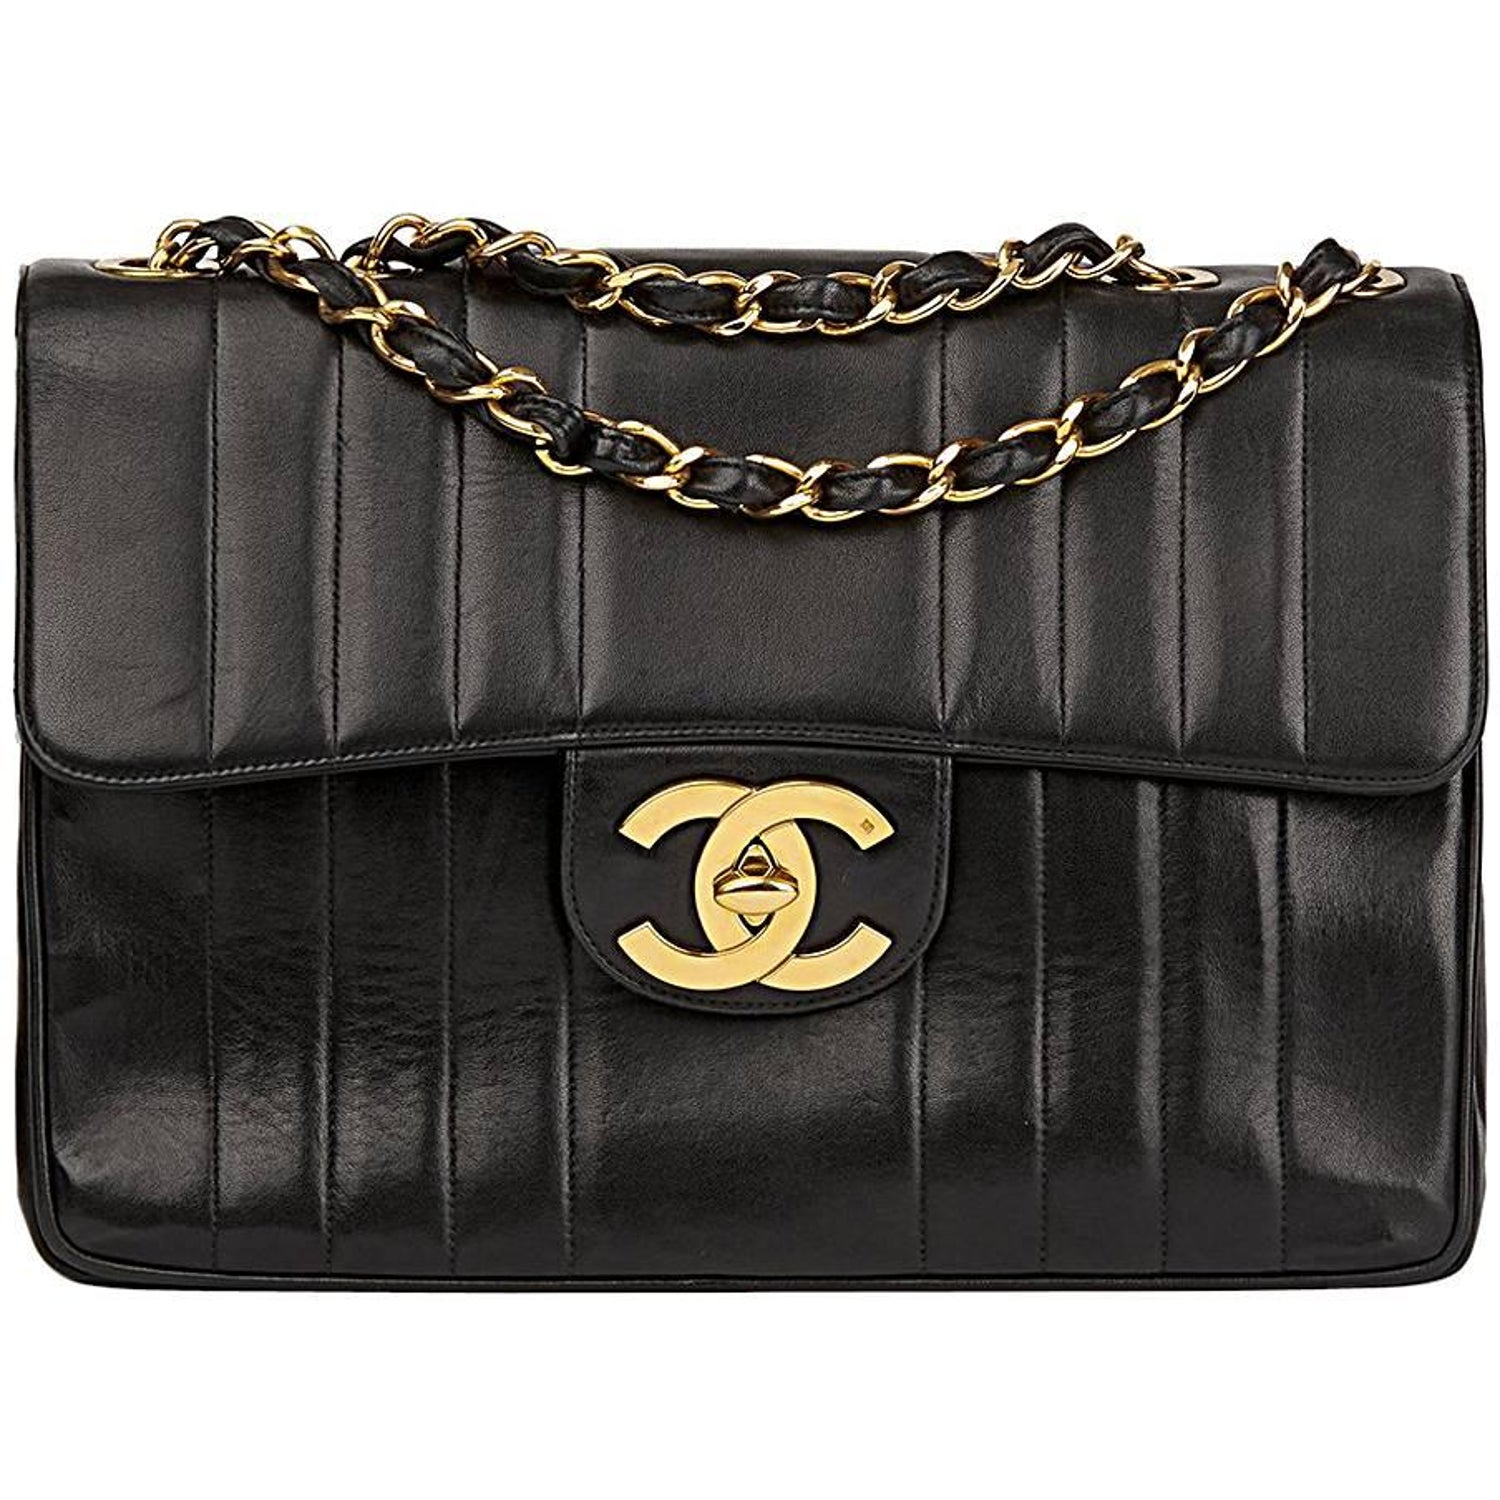 9cf2d4d5b180 1995 Chanel Black Vertical Quilted Lambskin Vintage Jumbo XL Flap Bag at  1stdibs